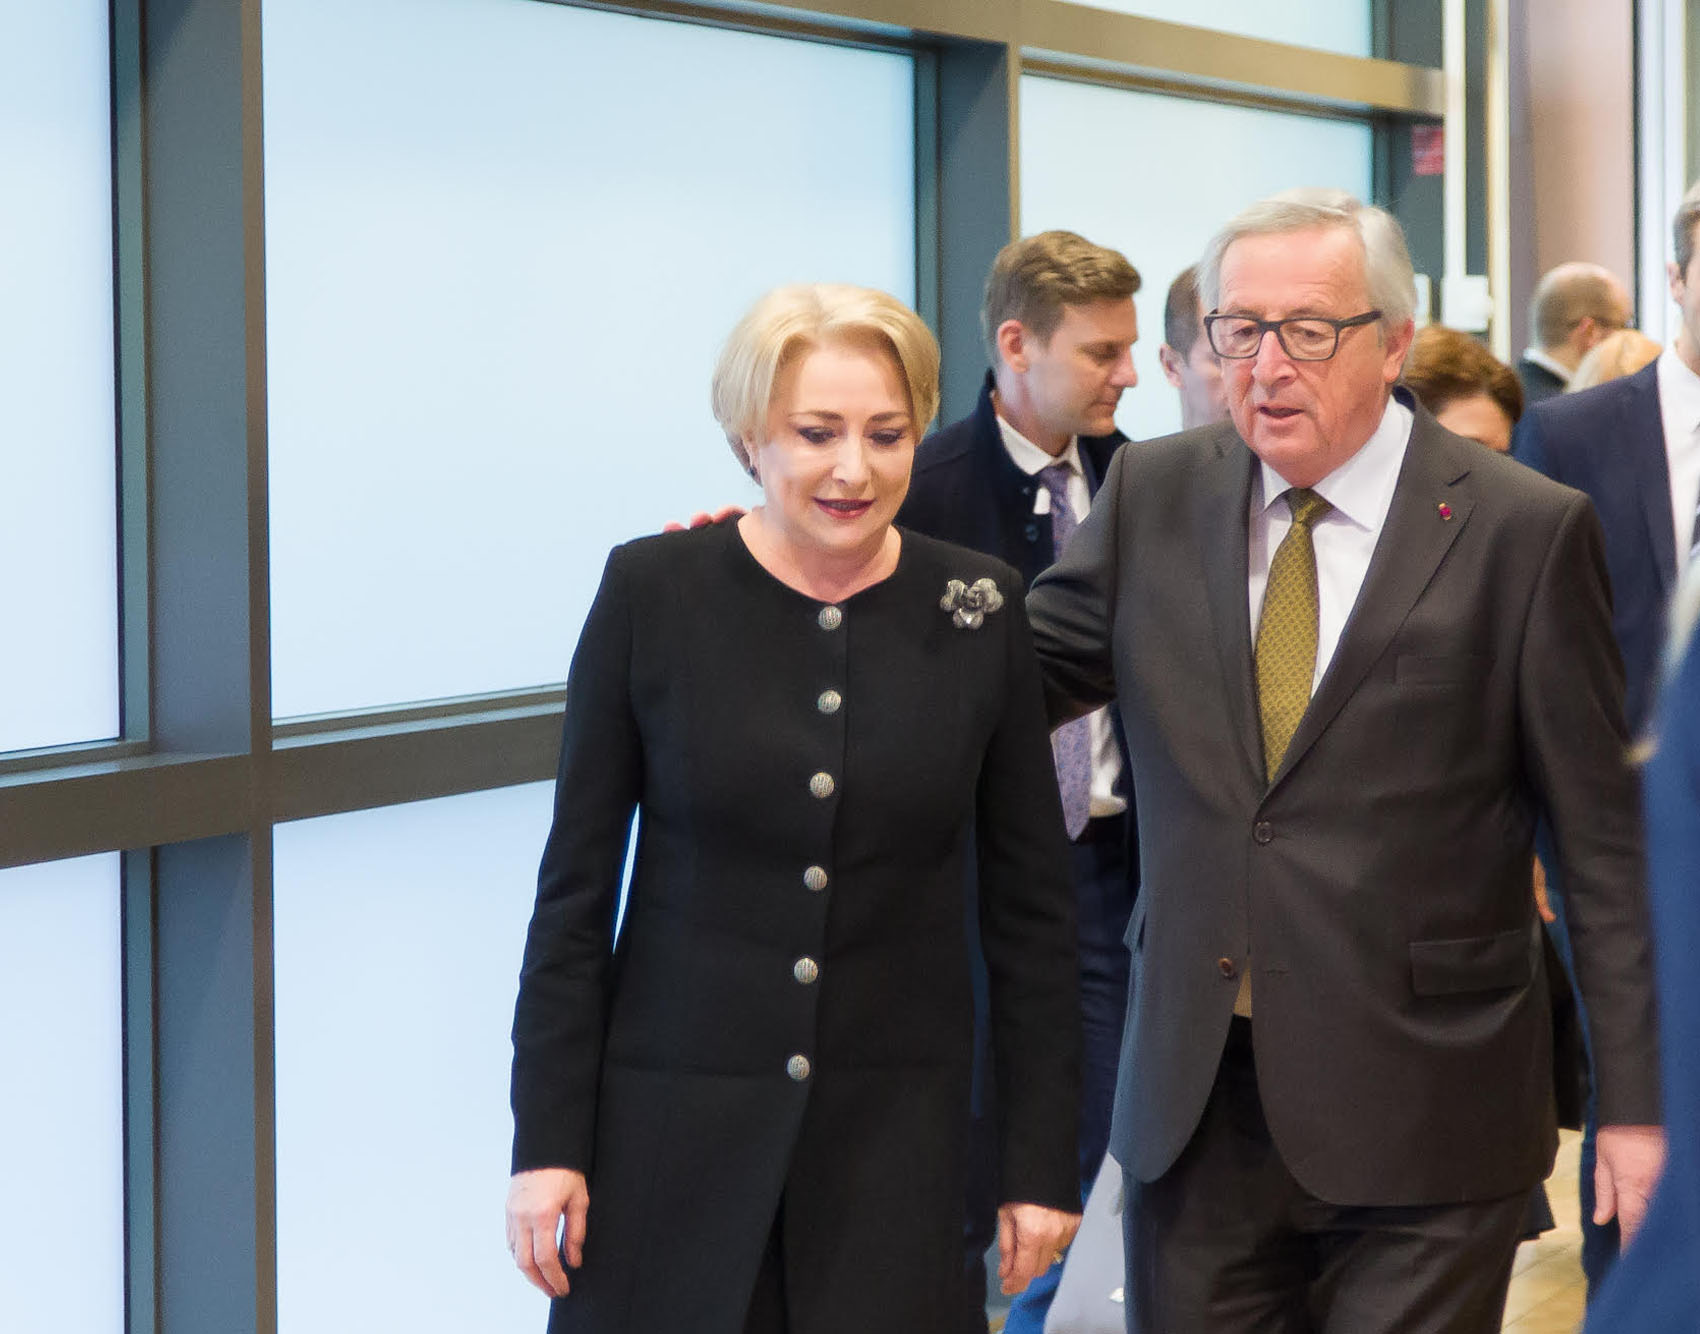 Bucharest ignores Brussels' concerns over judicial changes inRomania